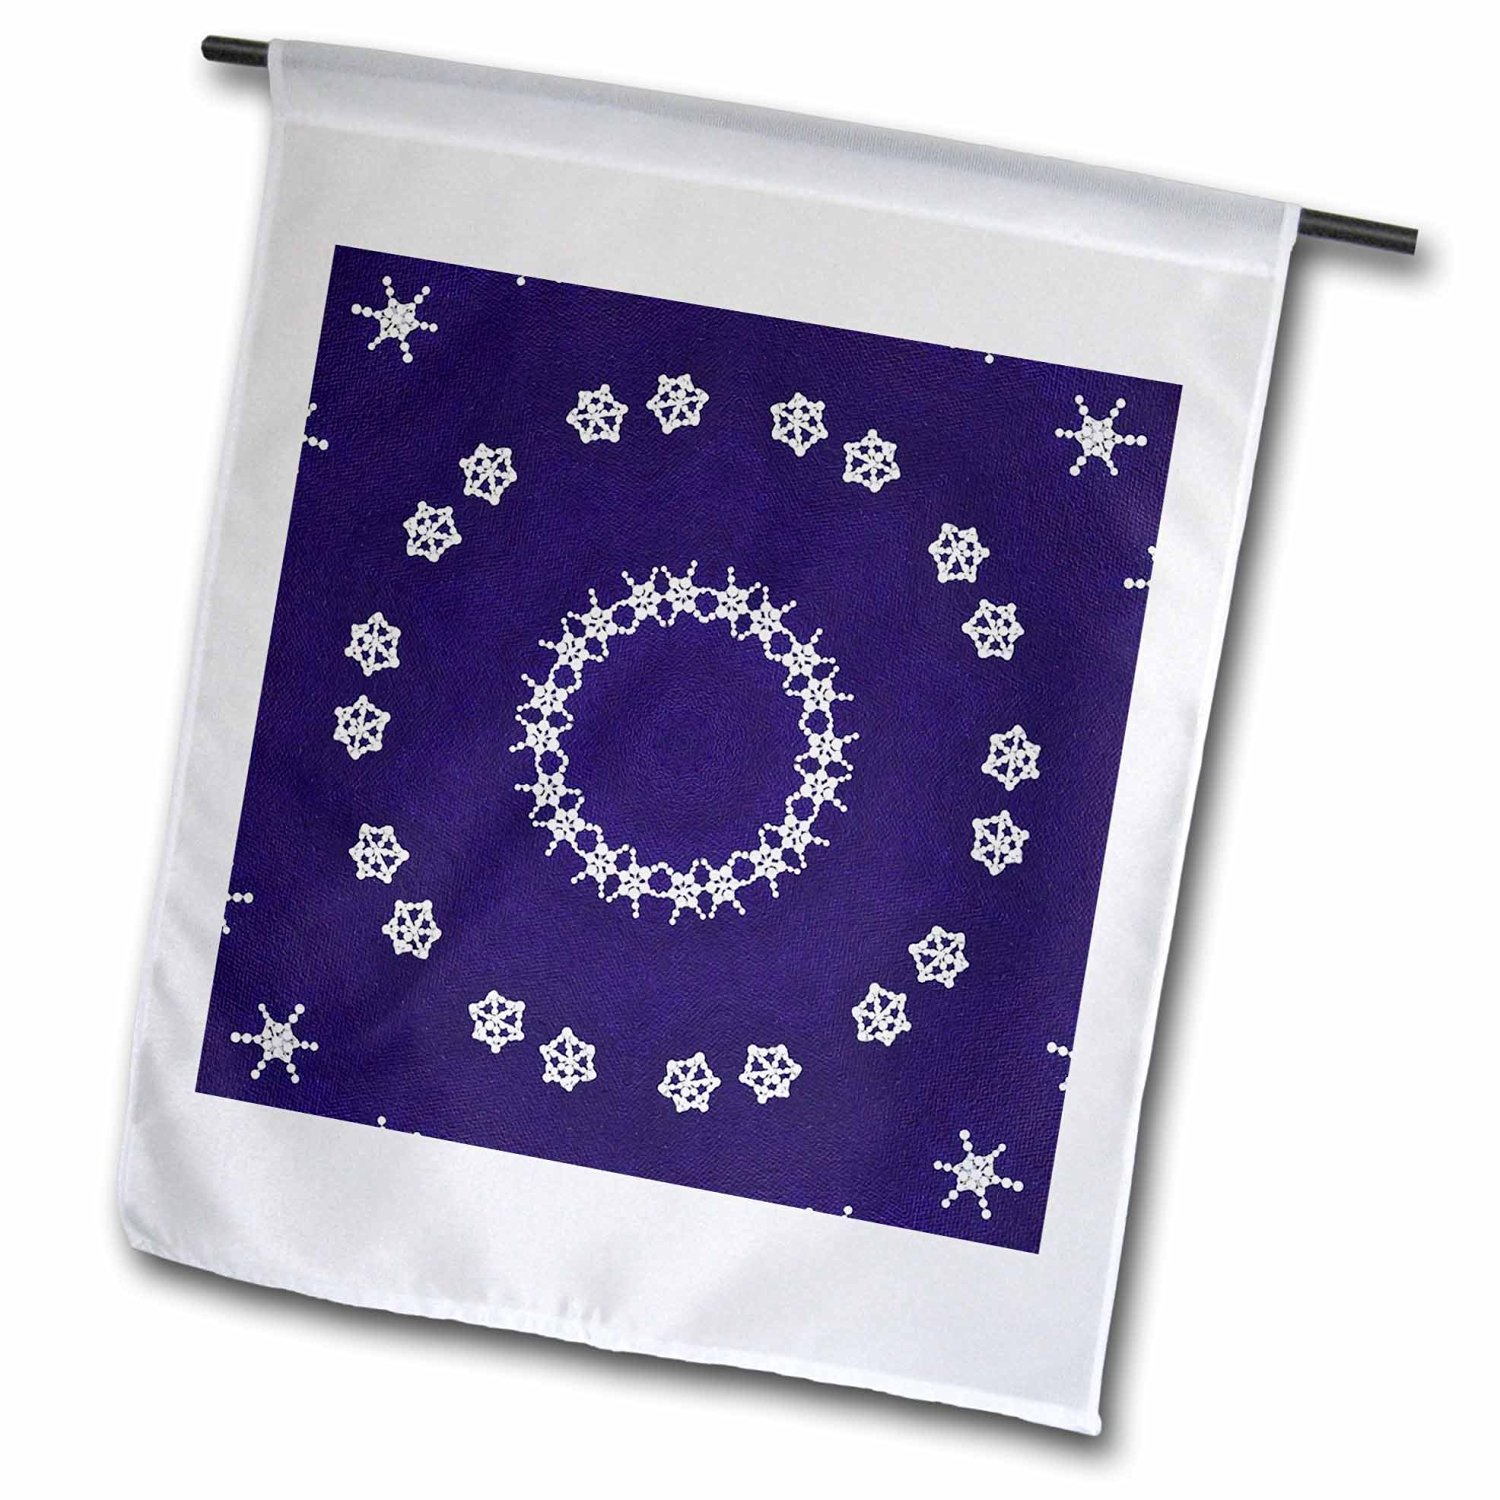 CherylsArt Kaleidoscope Patterns - Painted Snowflakes on Blue Kaleidoscope Pattern - 18 x 27 inch Garden Flag (fl_39476_2)